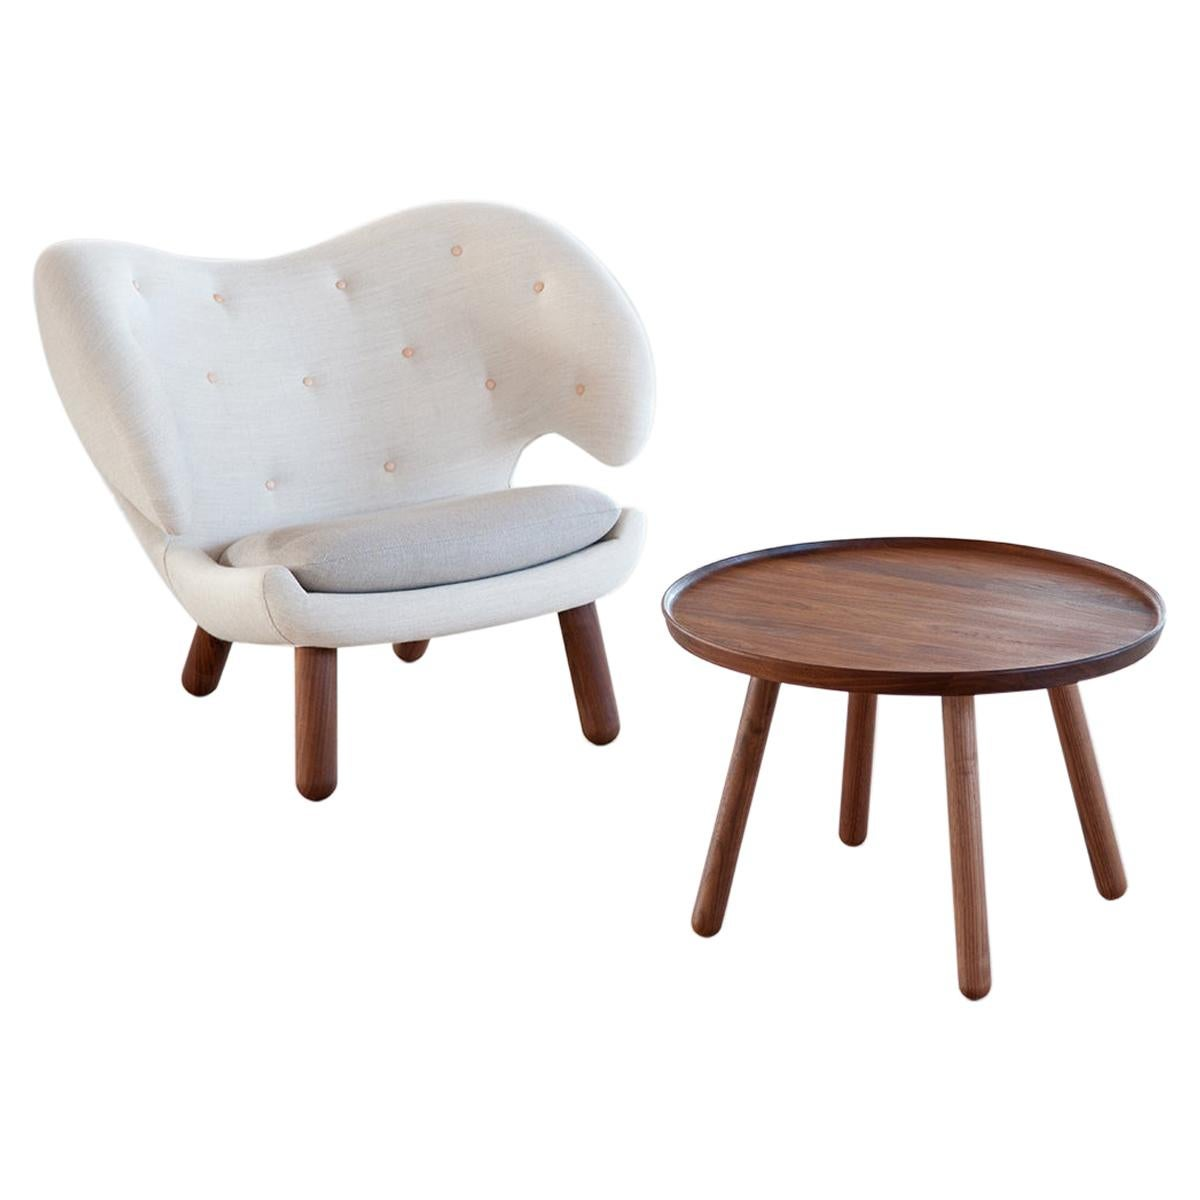 Set of Pelican Chair in Wood and Fabric and Pelican Table by Finn Juhl